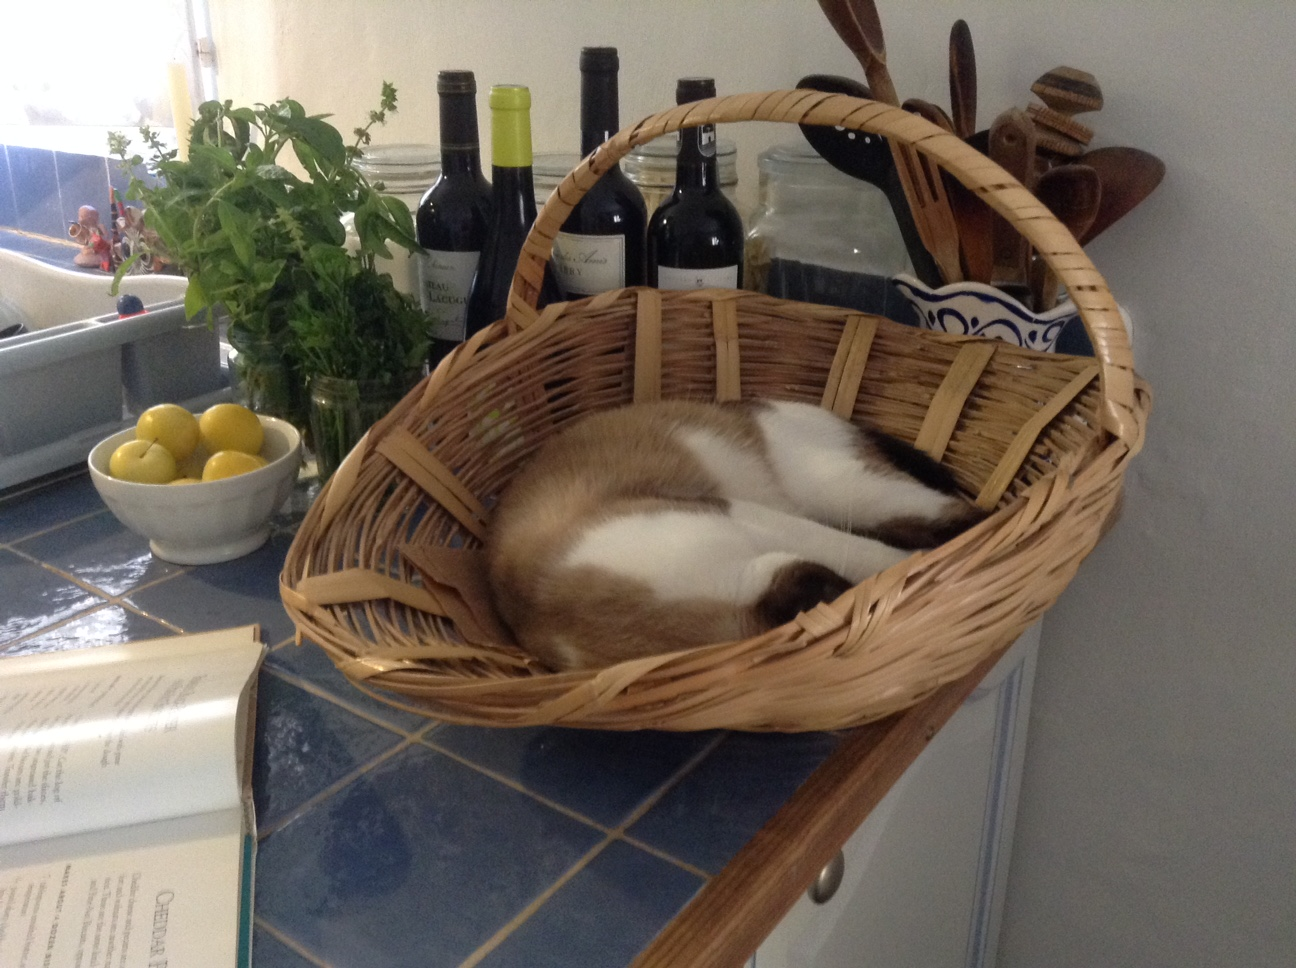 IN MY FRENCH HOUSE LIVES A FRENCH CAT